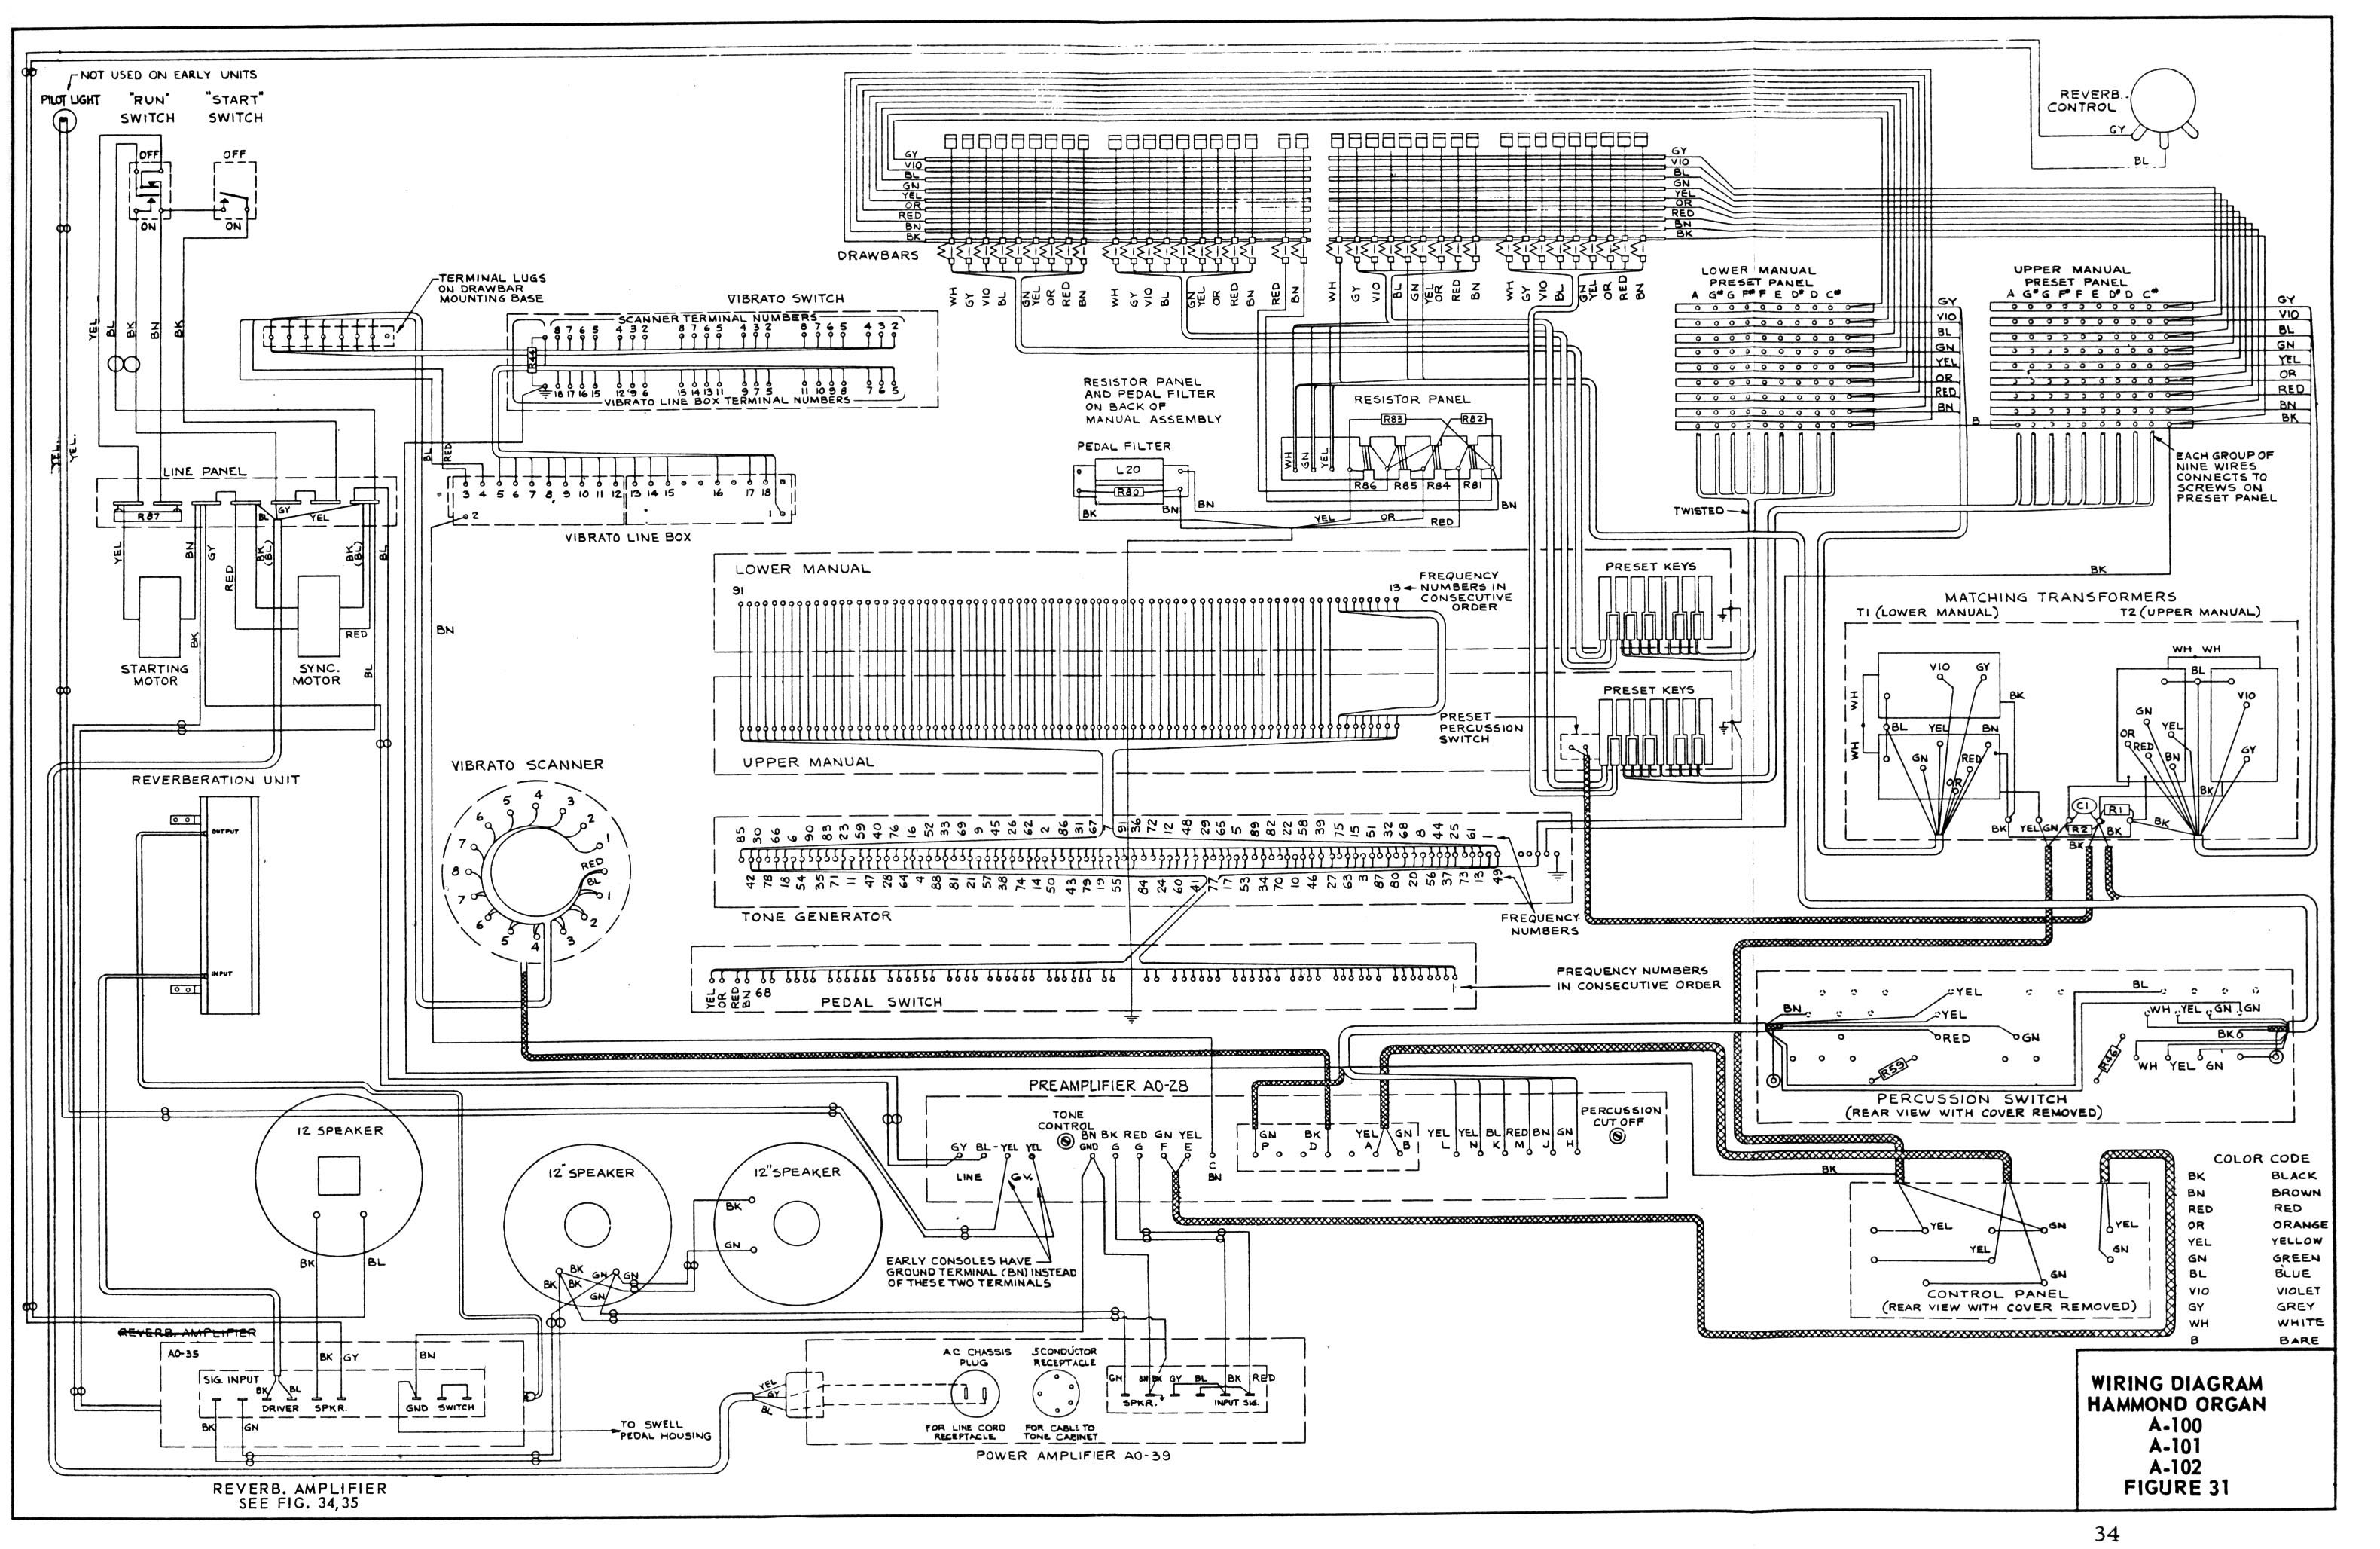 A100 Service Manual – Key West Panel Wiring Diagram